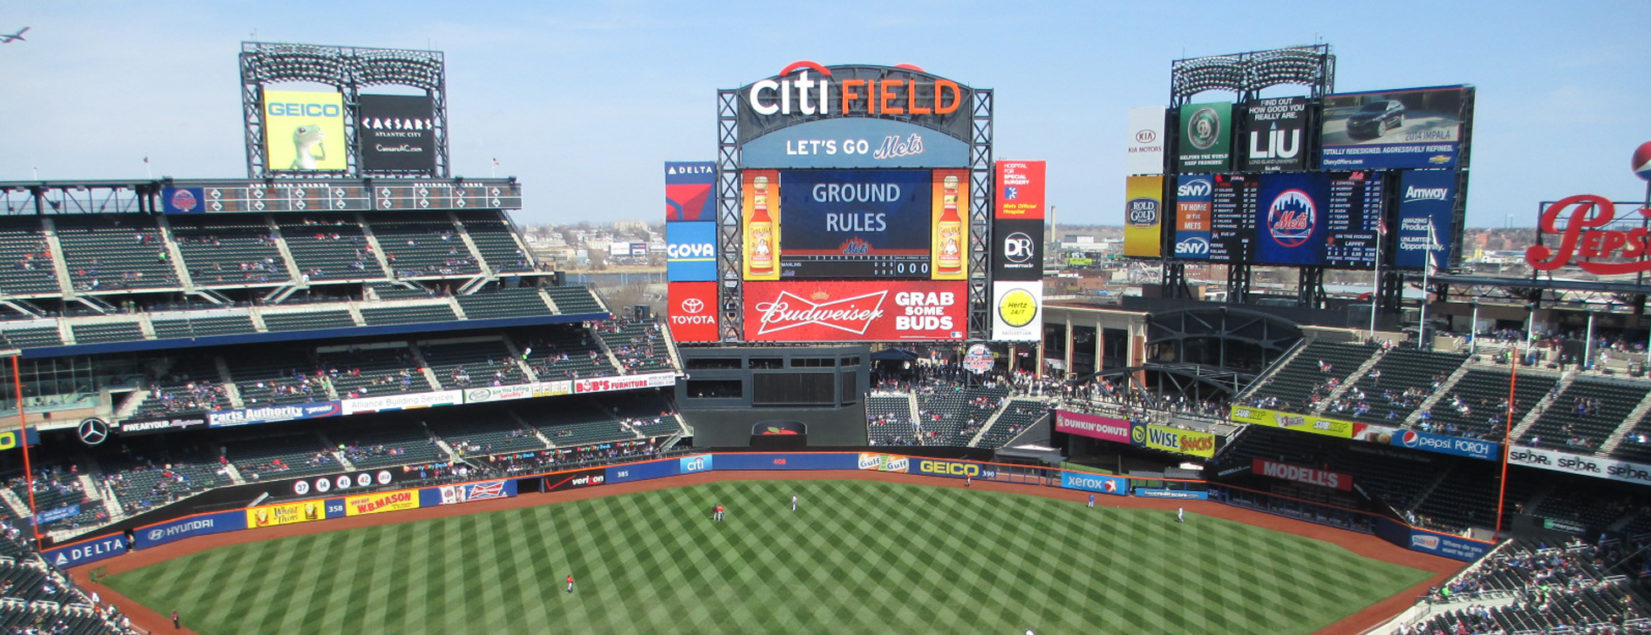 The True Insiders Guide to Citi Field  MLB Ballpark Guides